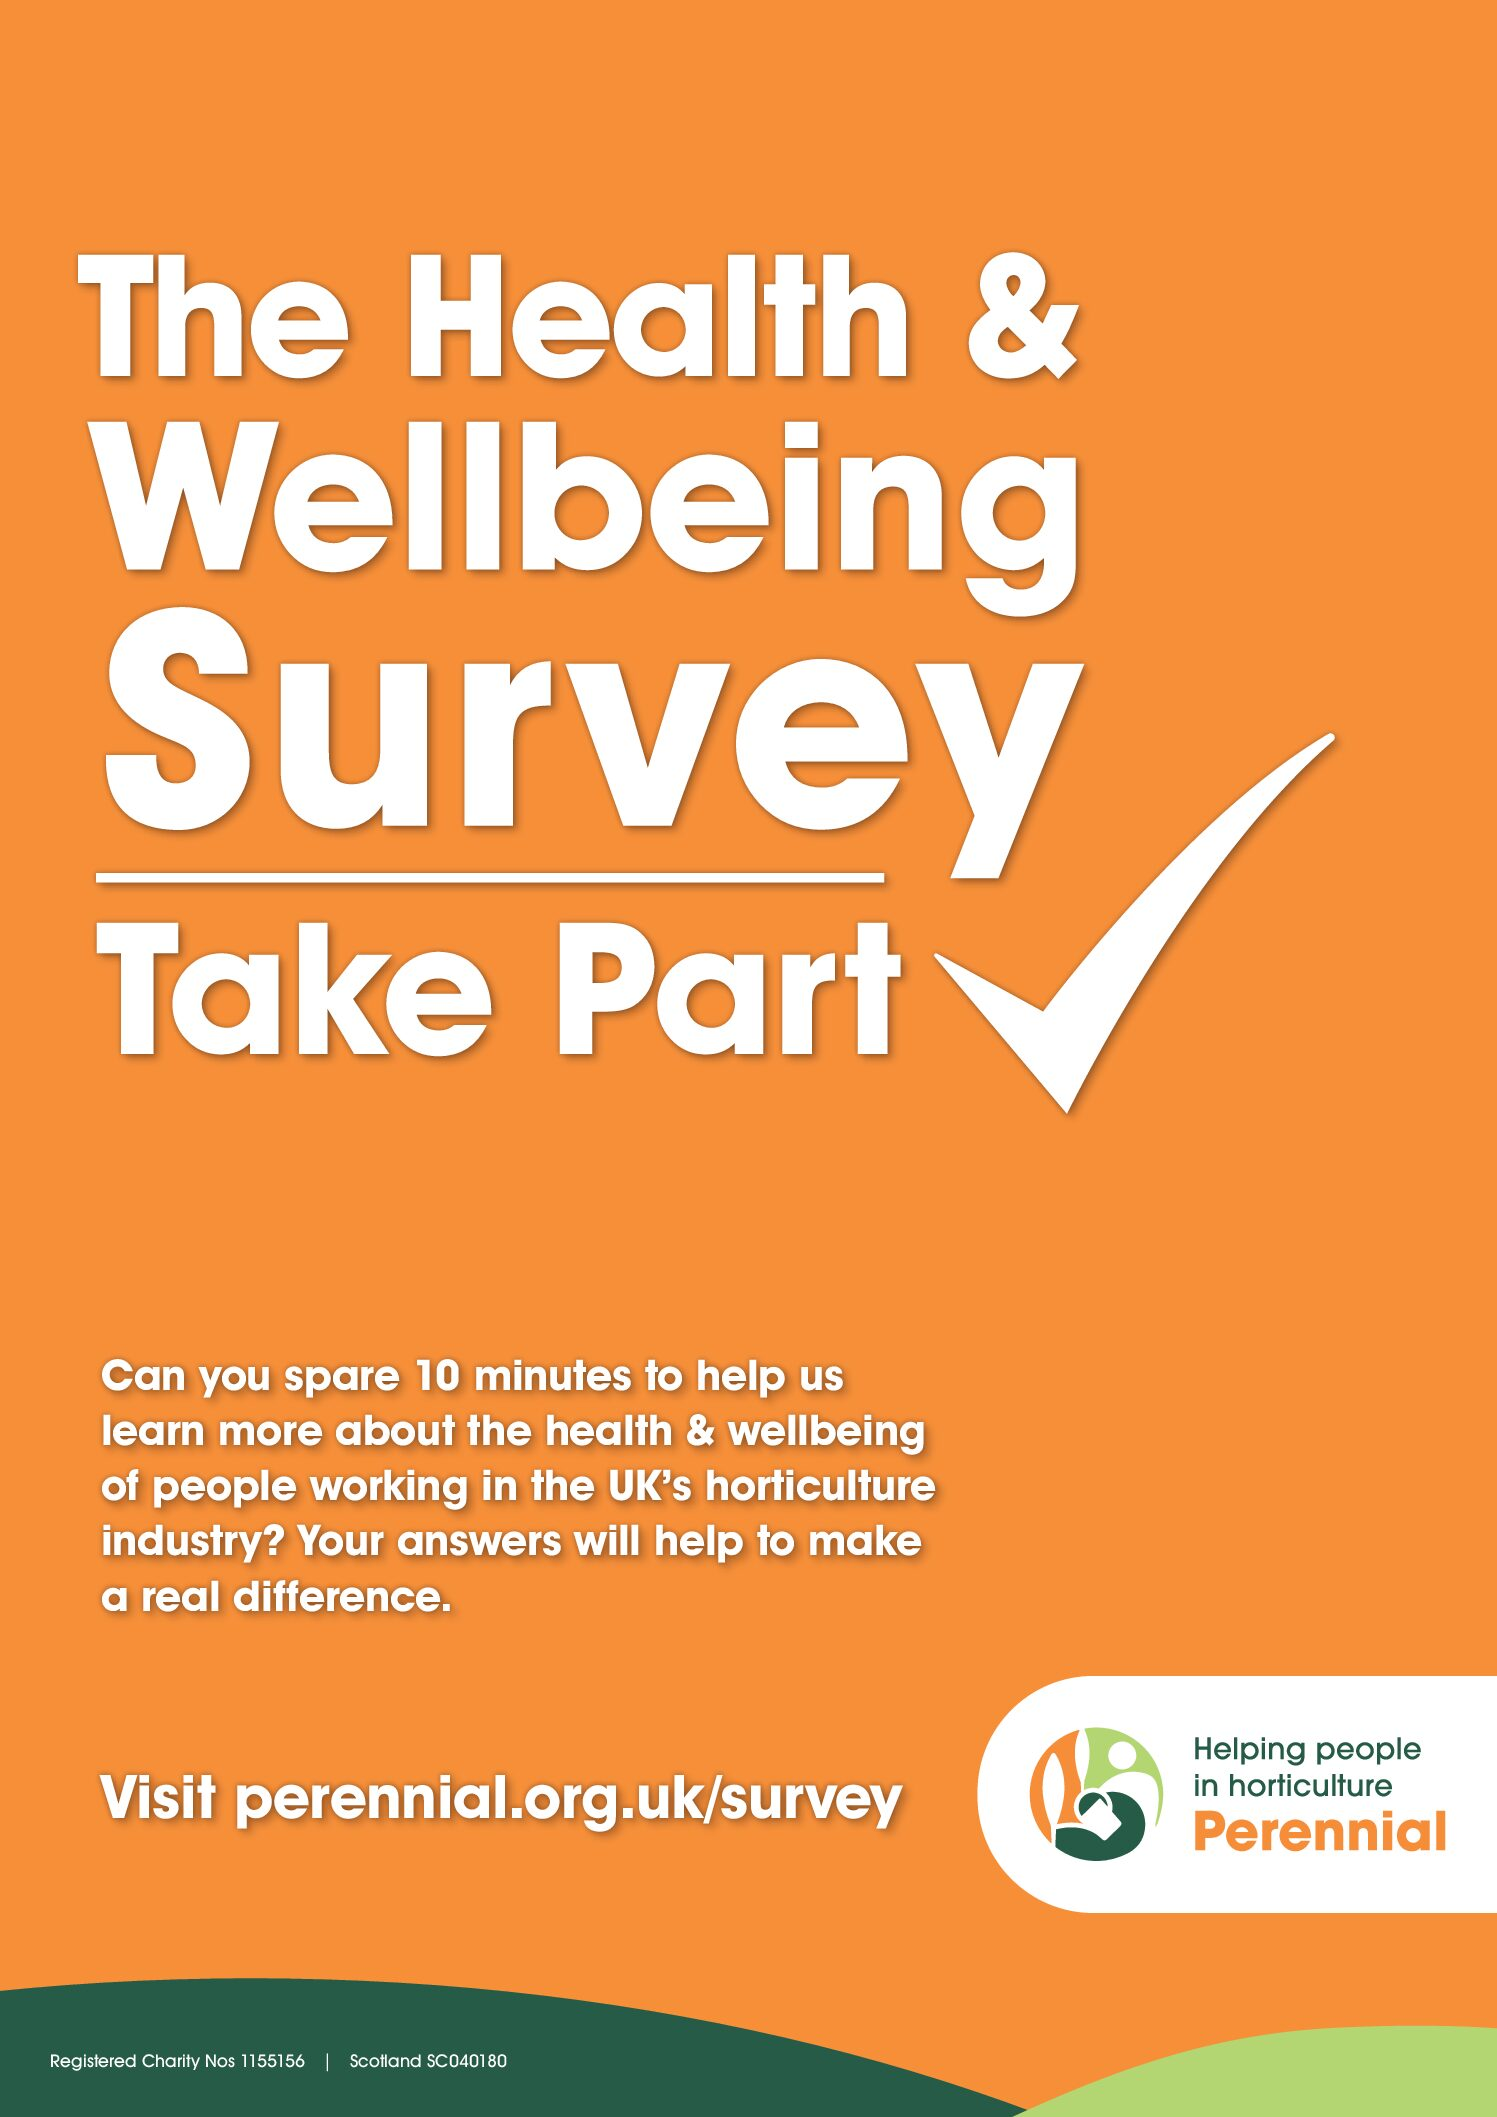 Biggest Health and Wellbeing Survey for UK horticulture industry launched